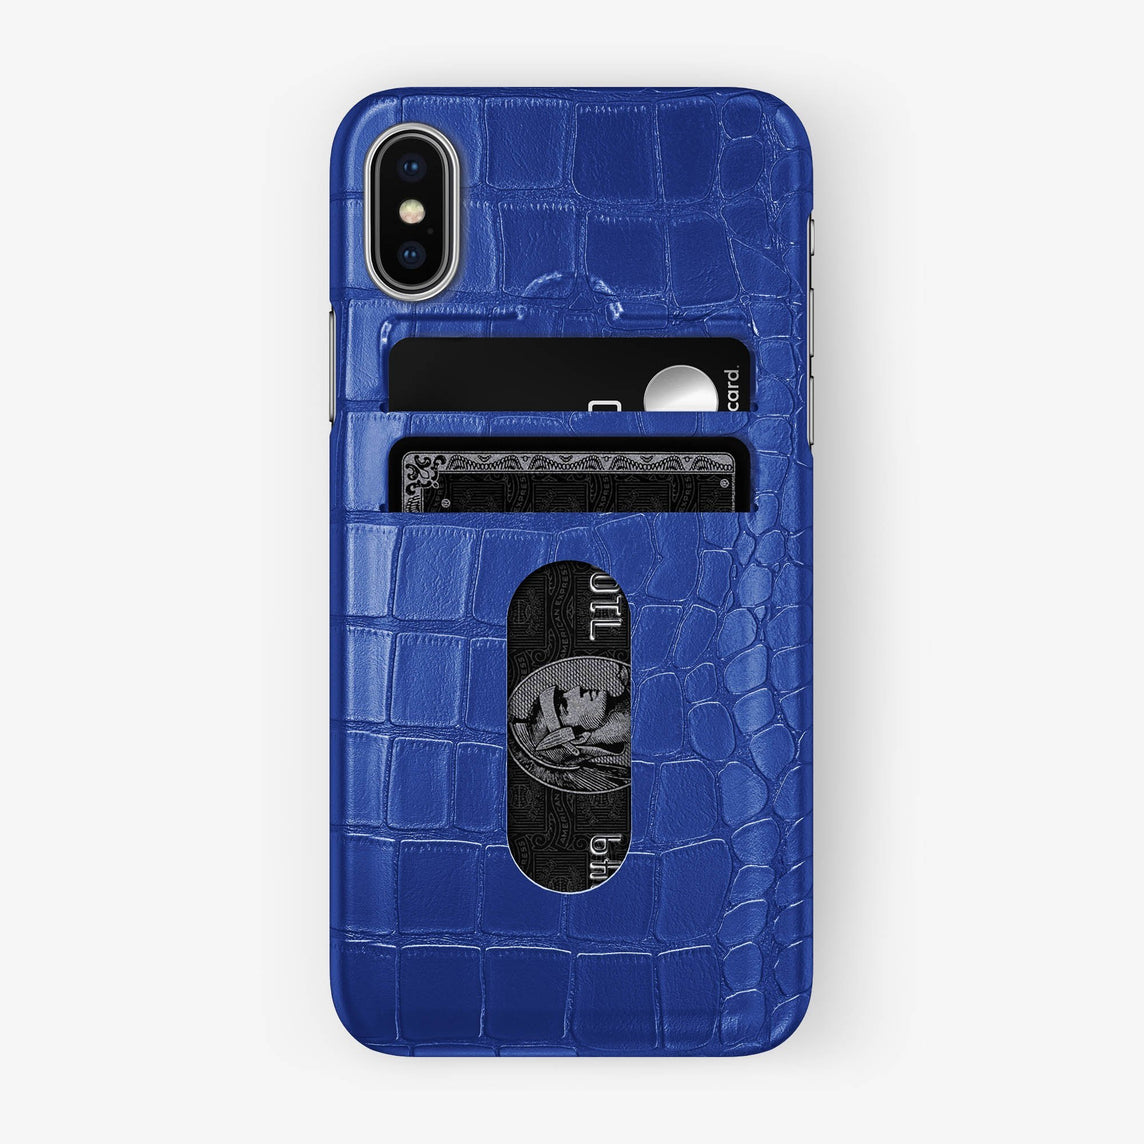 Alligator [iPhone Card Holder Case] [model:iphone-x-case] [colour:peony-blue] [finishing:stainless-steel] - Hadoro